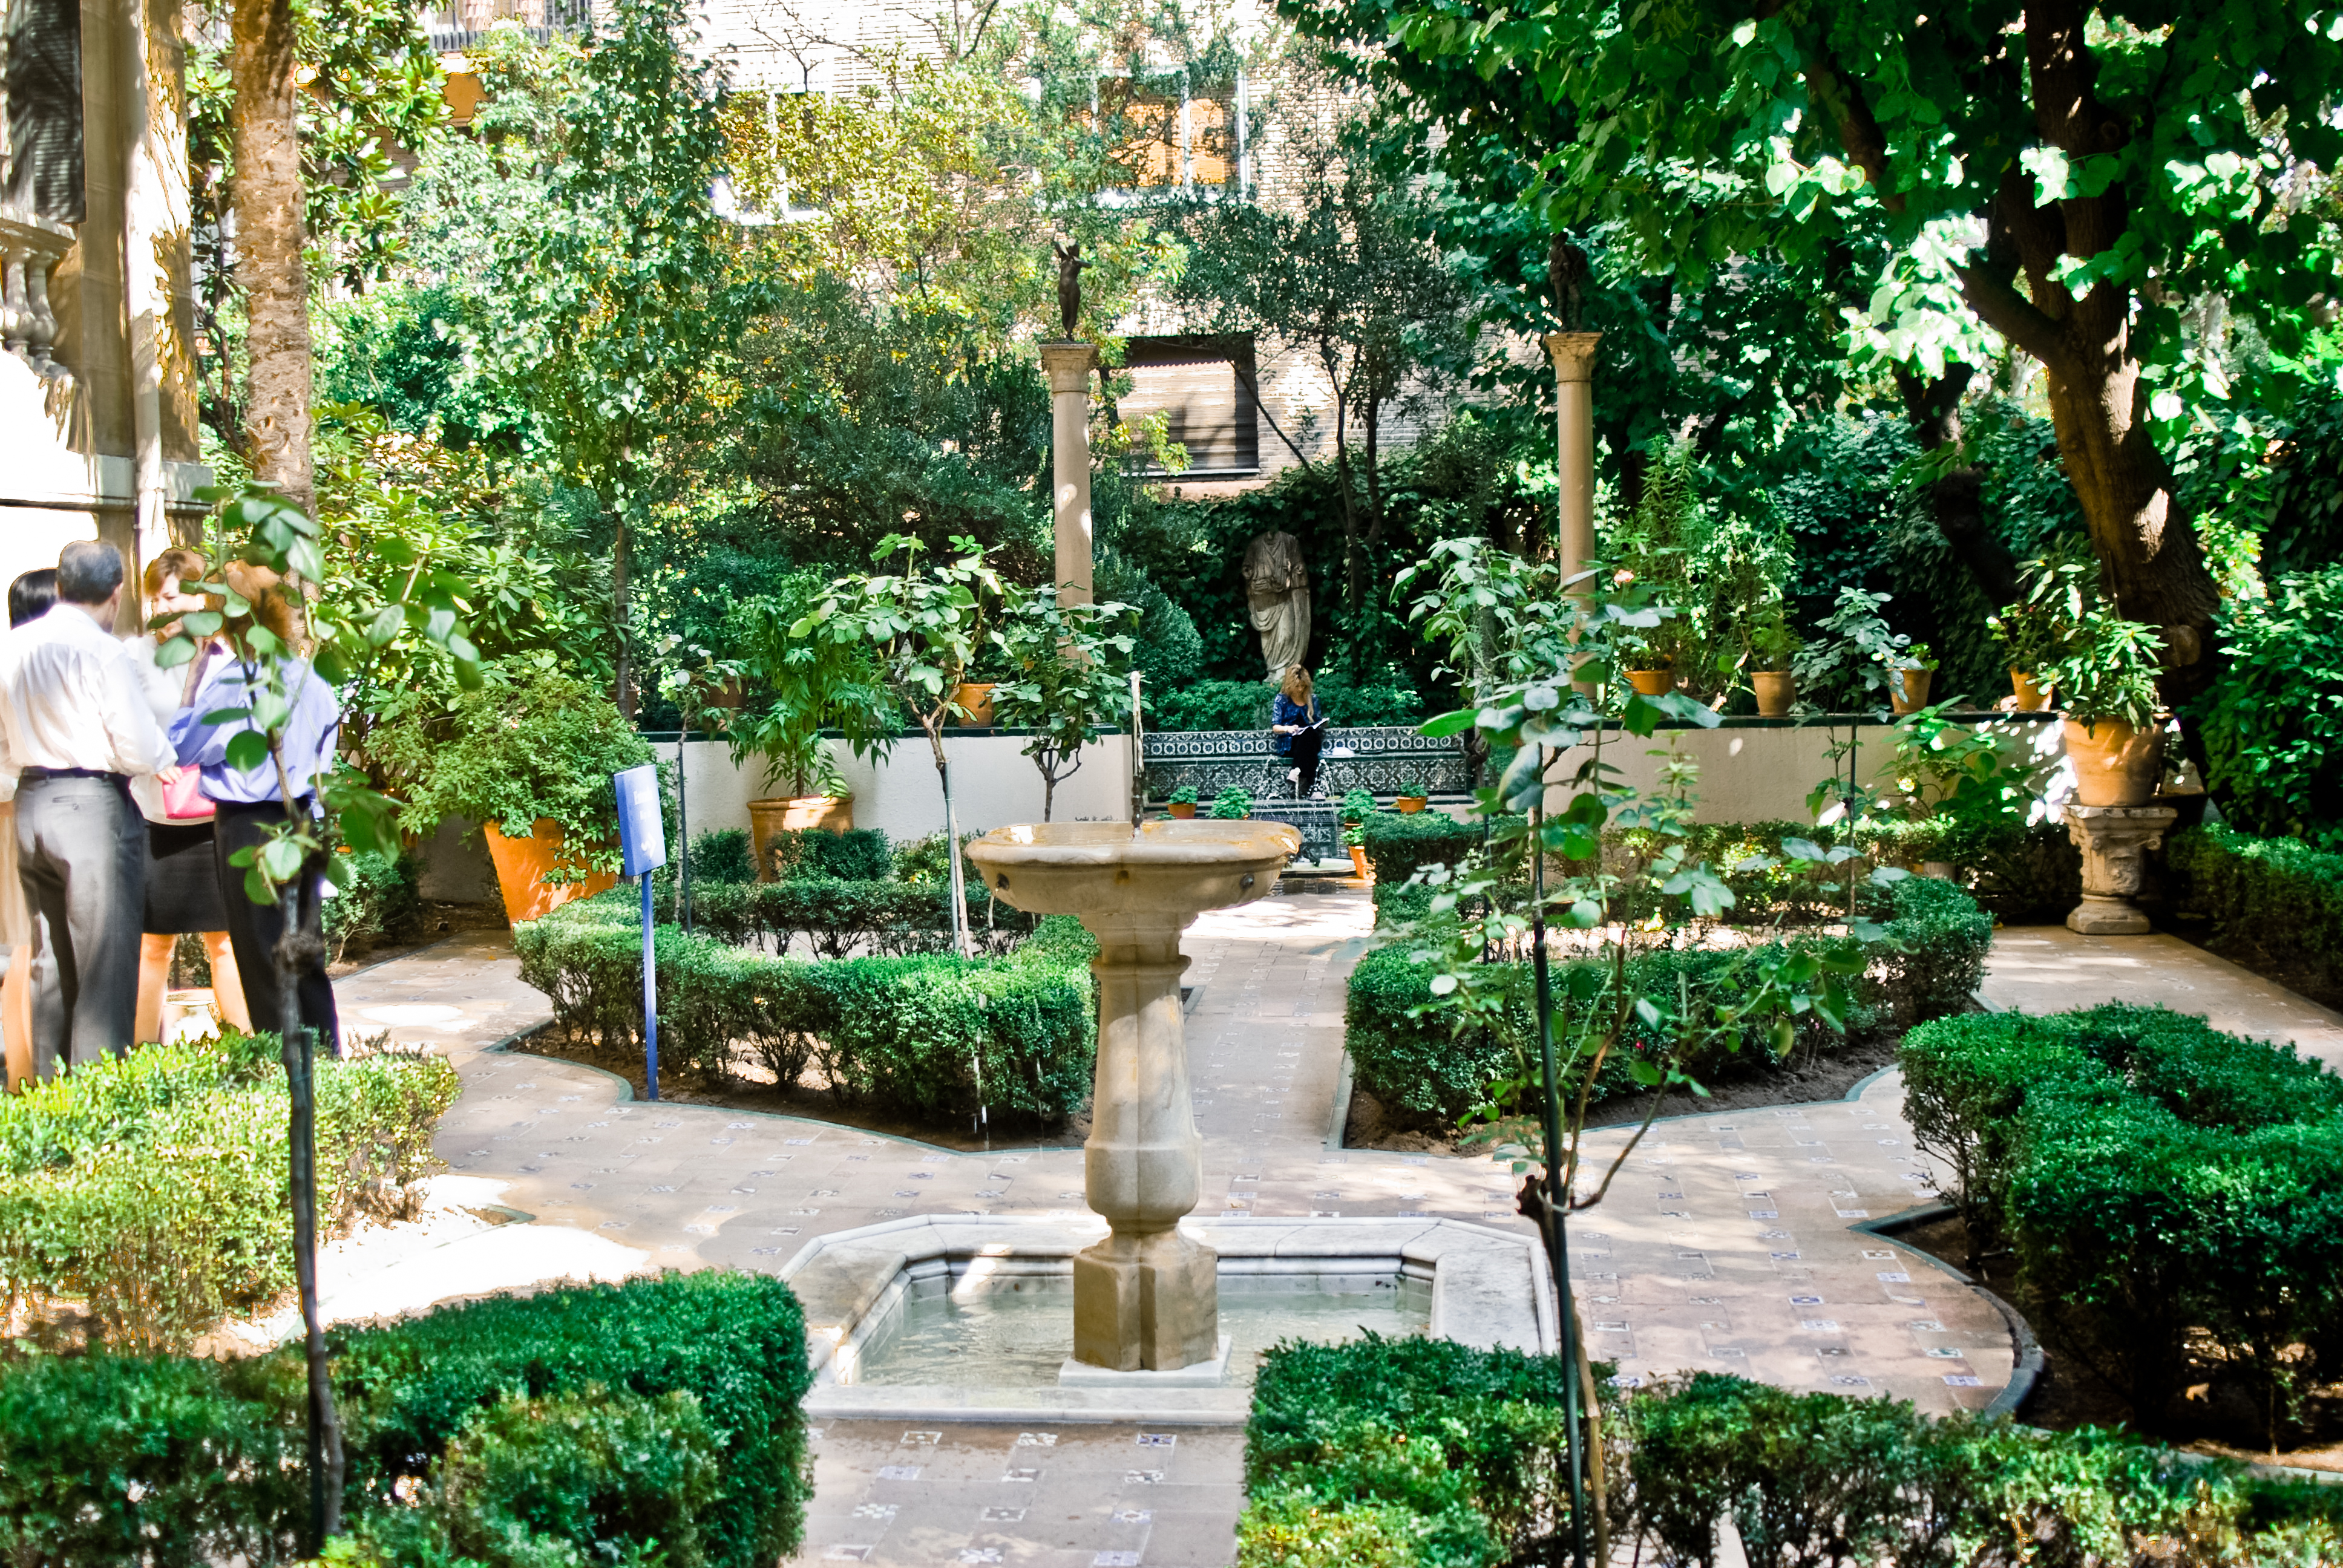 garden scene in Madrid